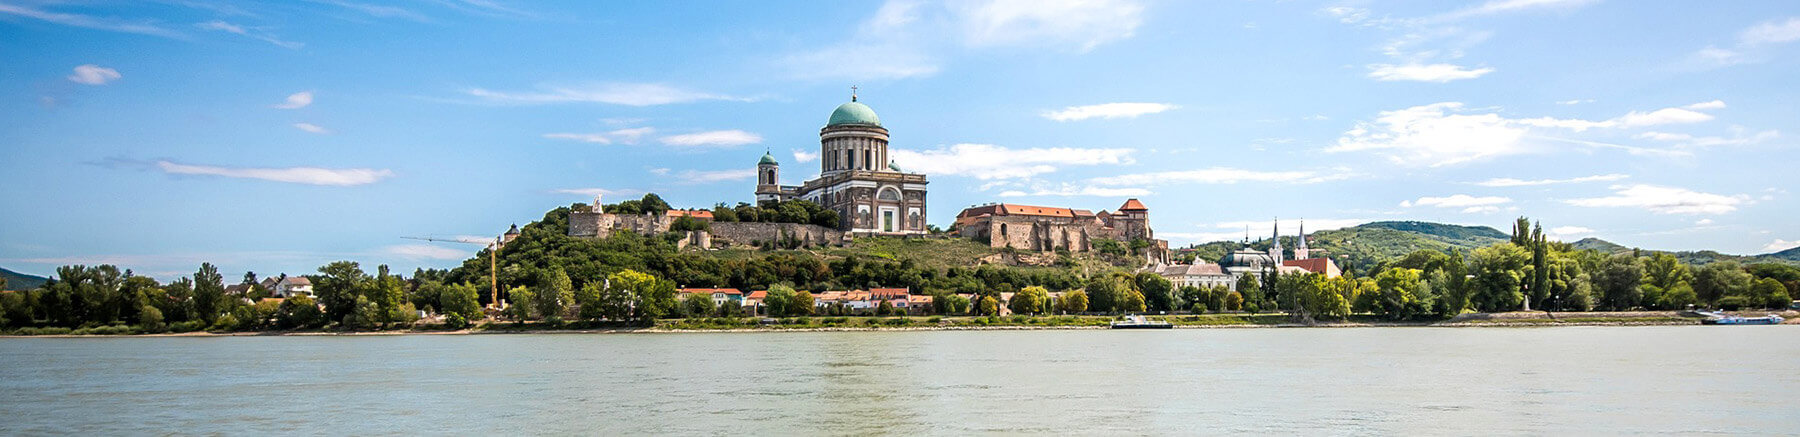 View of Esztergom Basilica from the opposite bank of the Danube